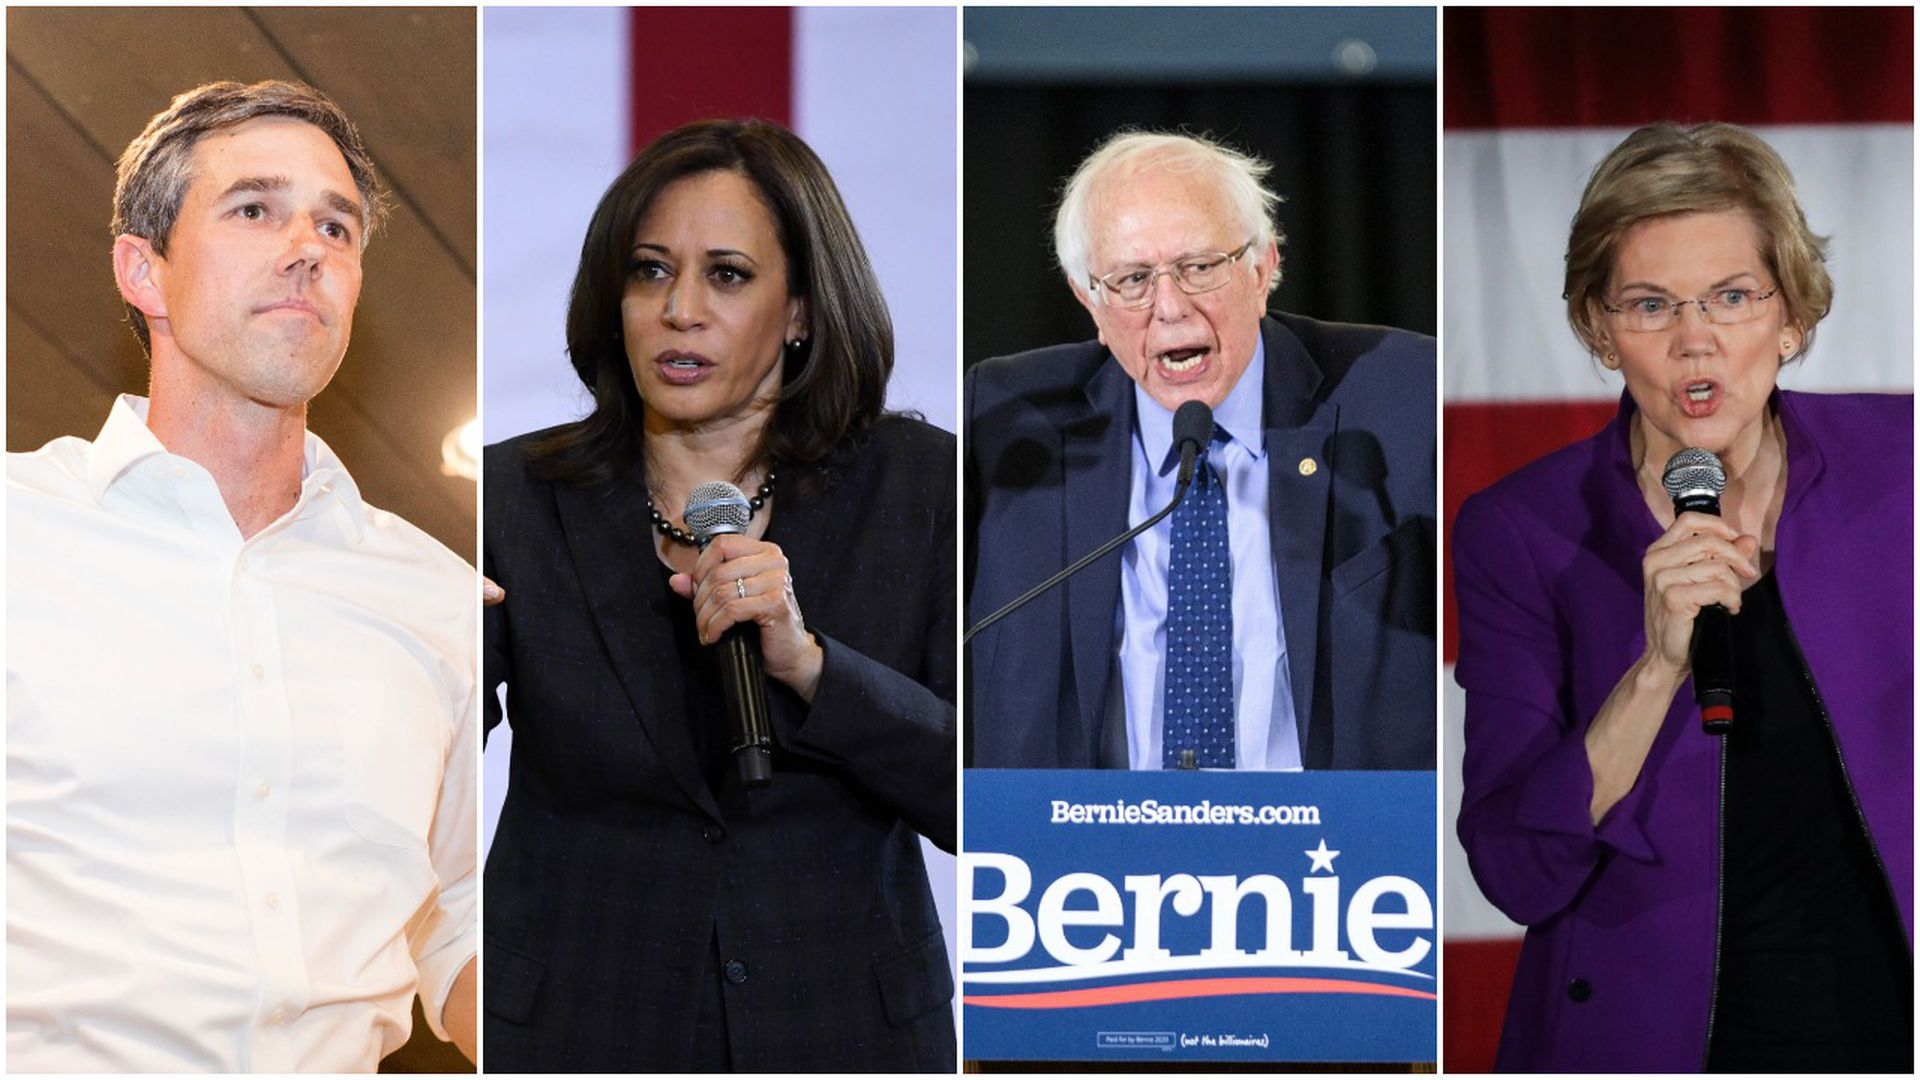 Medicare for All: Where the Democratic candidates stand